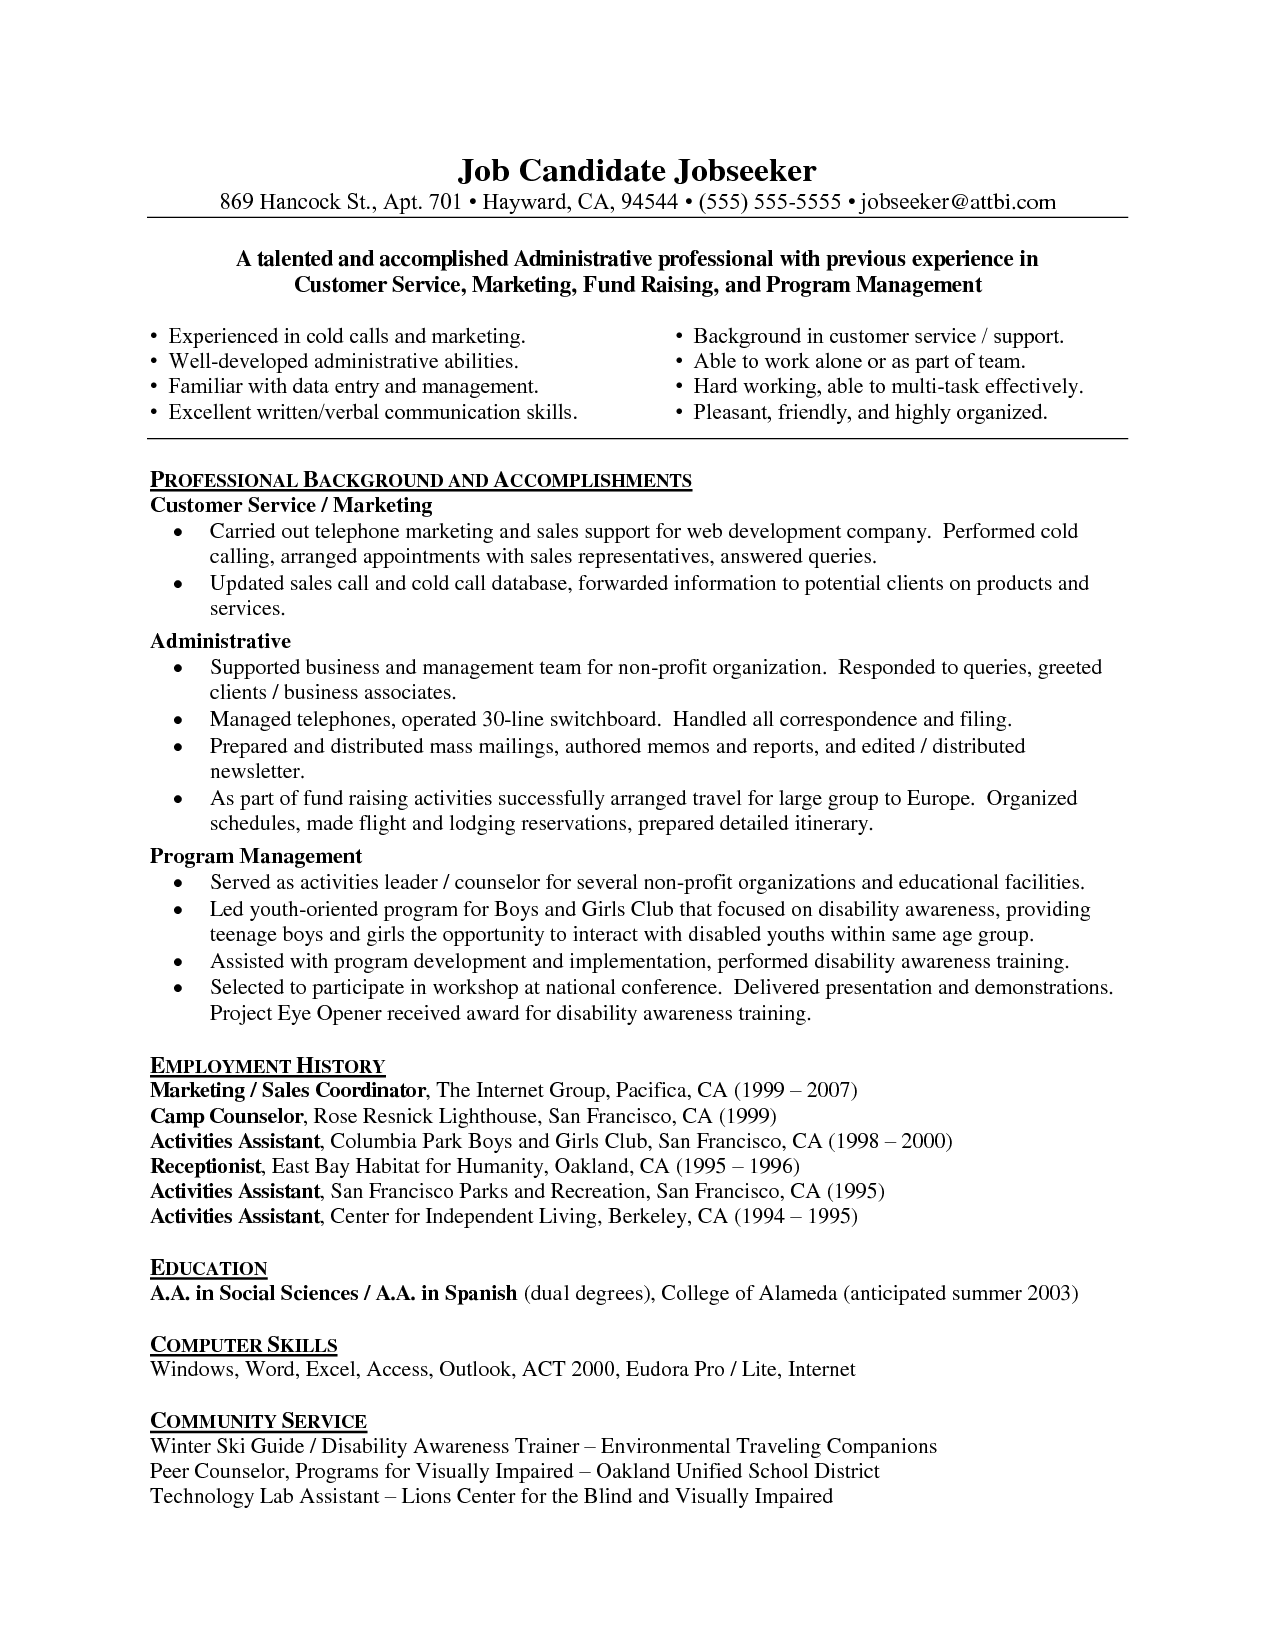 Customer Service Resume Format – Customer Service Resume